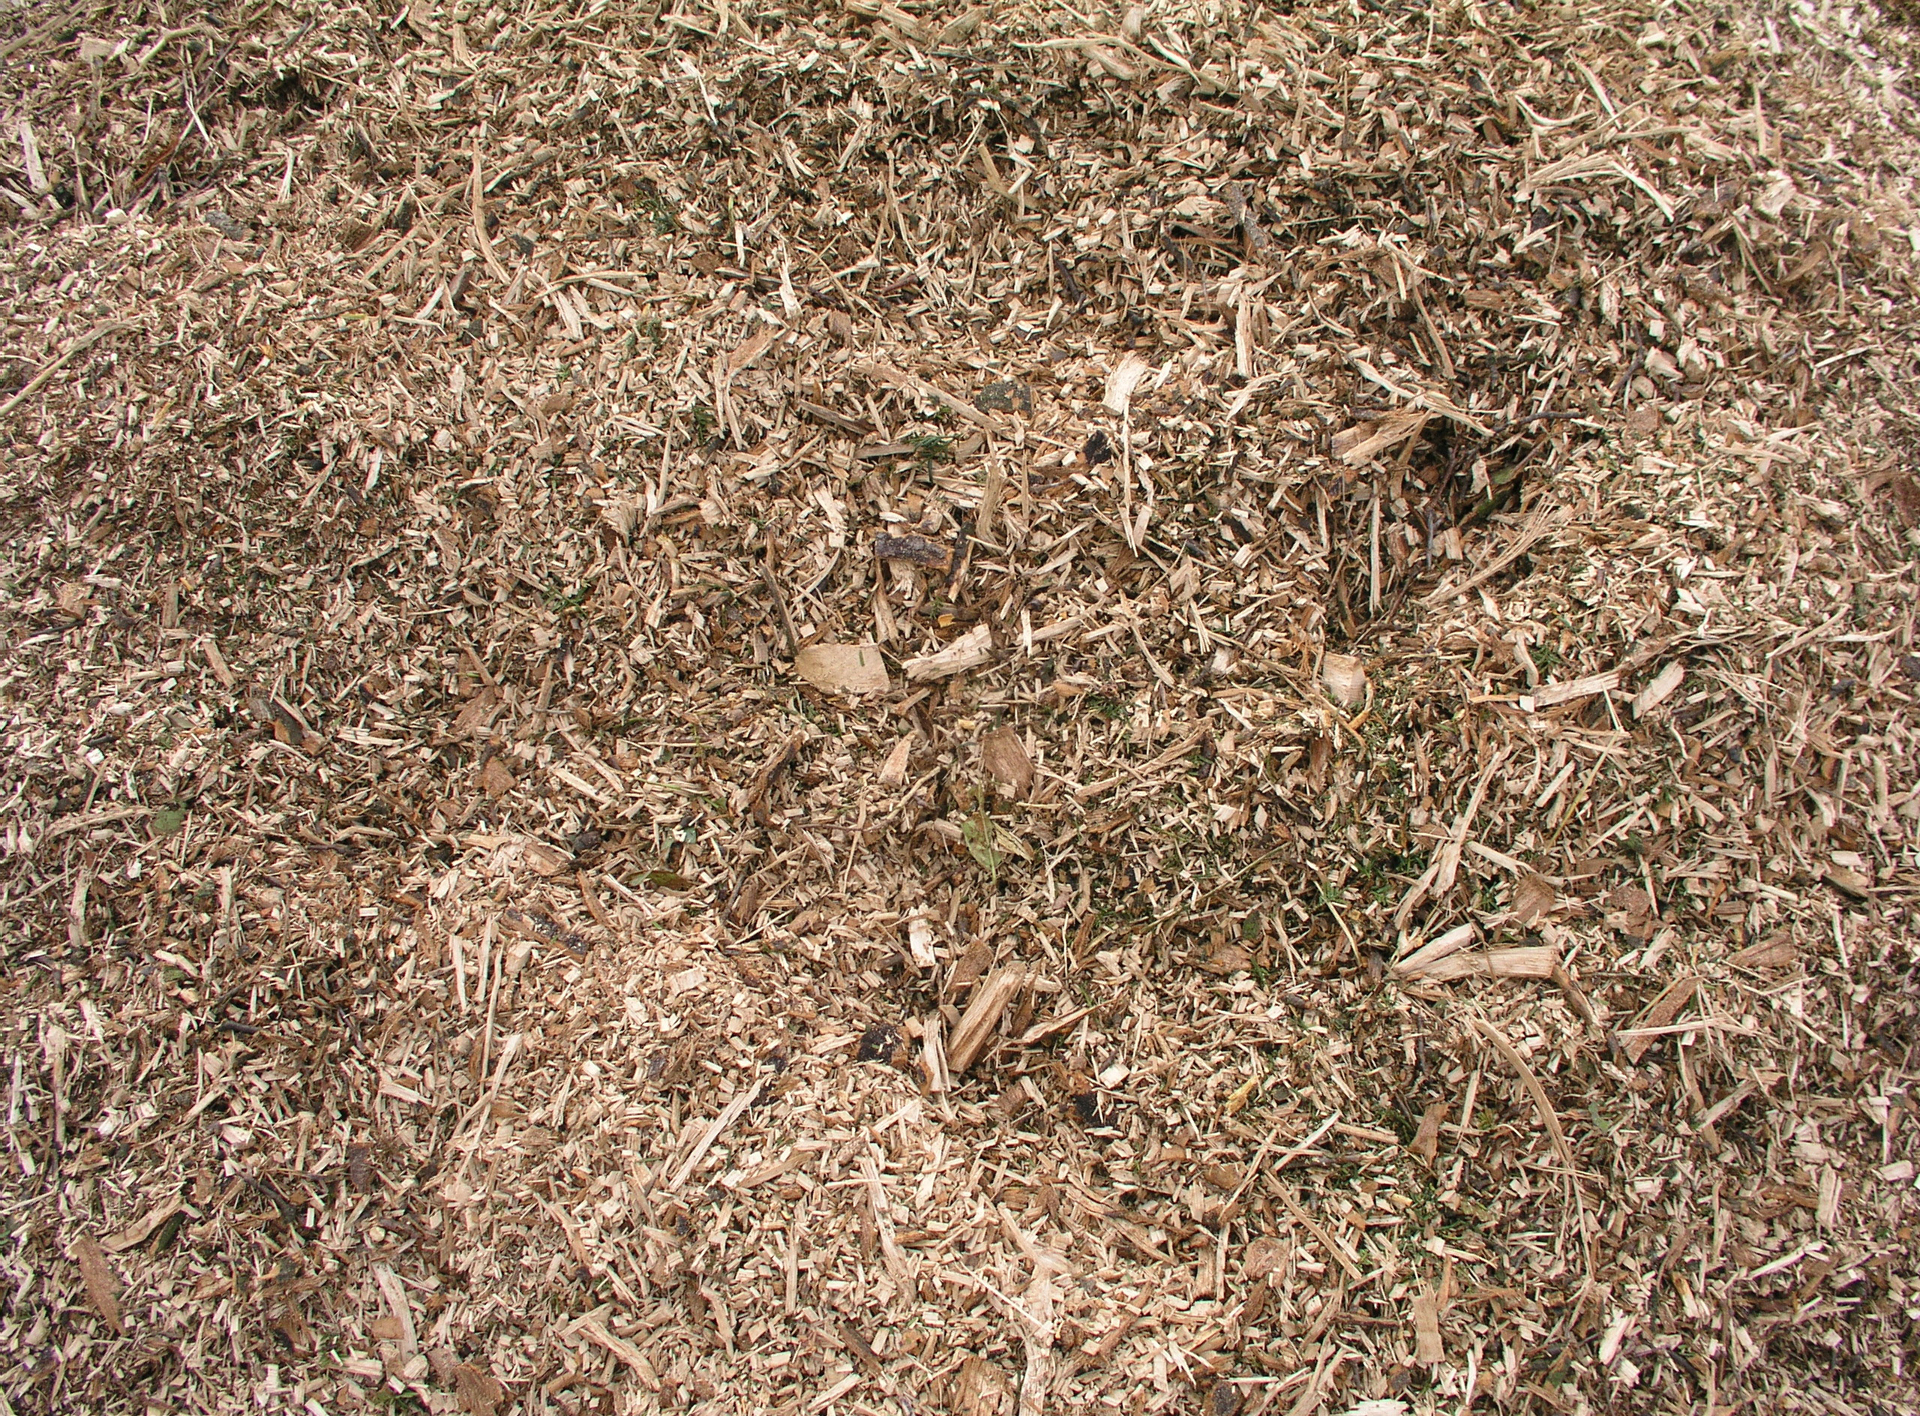 fine_wood_chips_4210097